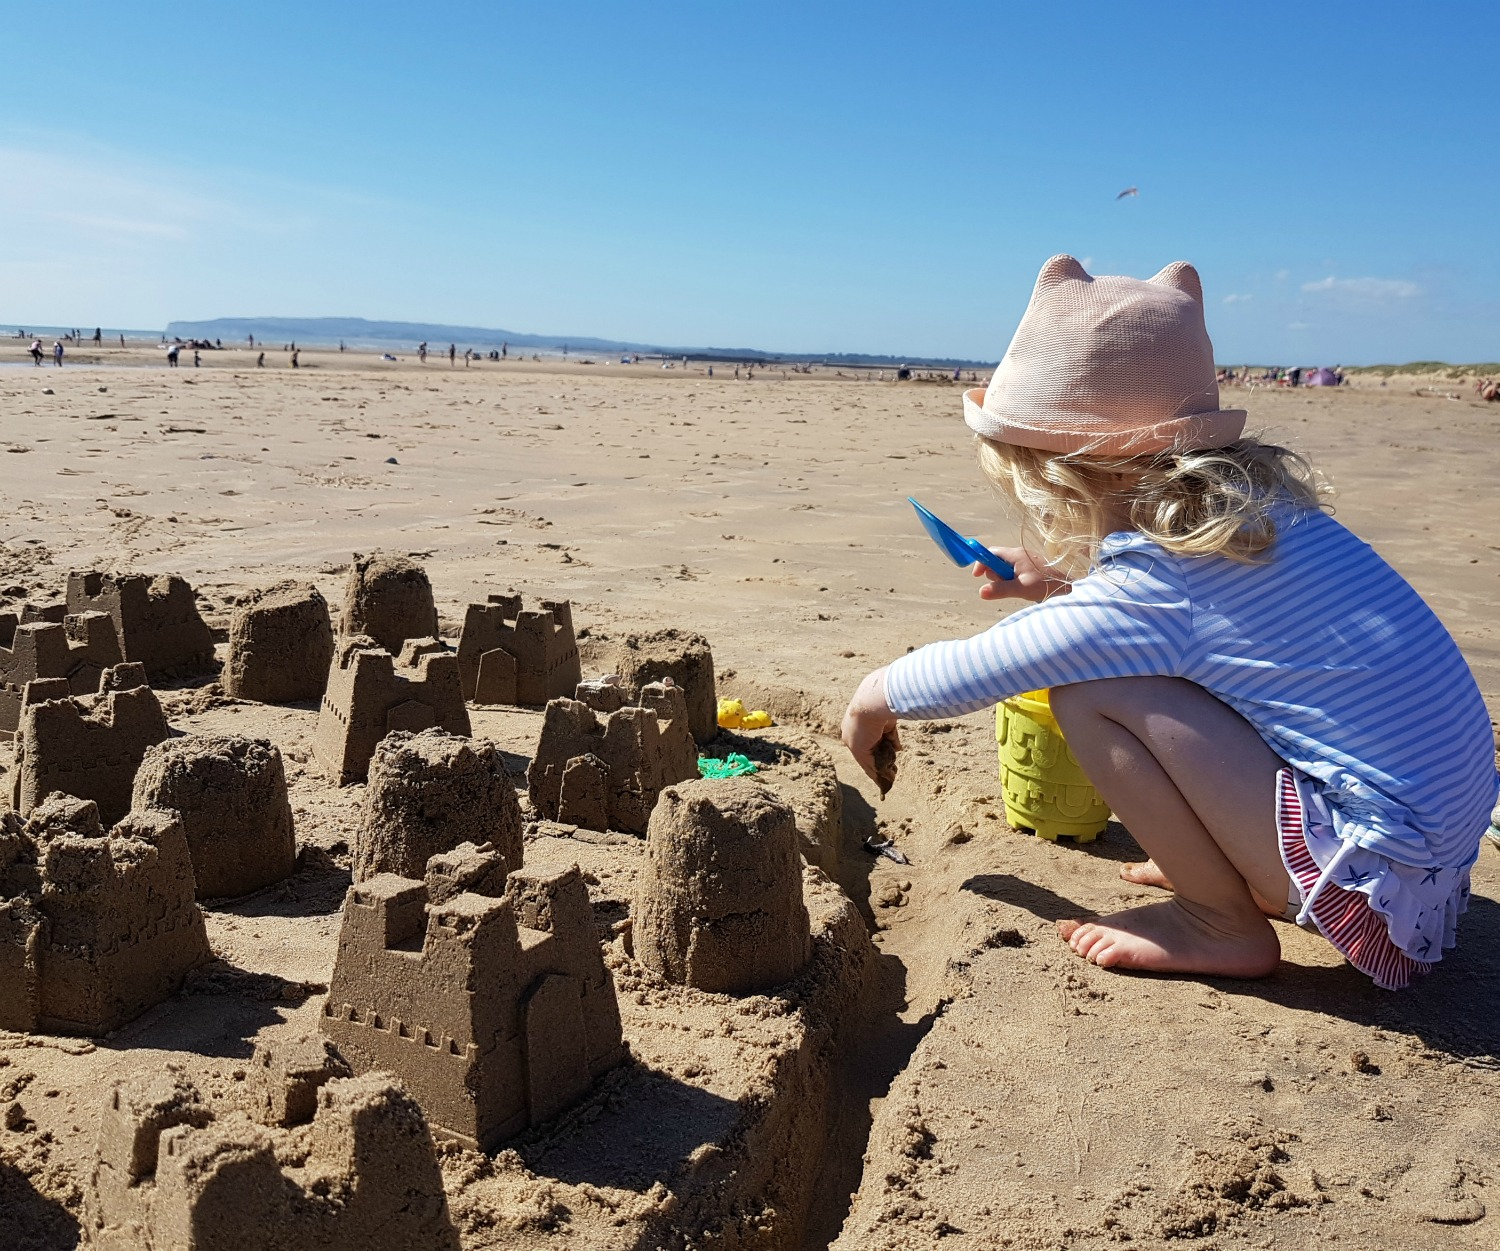 Girl making sandcastles on Camber Sands beach in East Sussex - spending a weekend in East Sussex with my daughter before the start of school, to explore the history and coastline